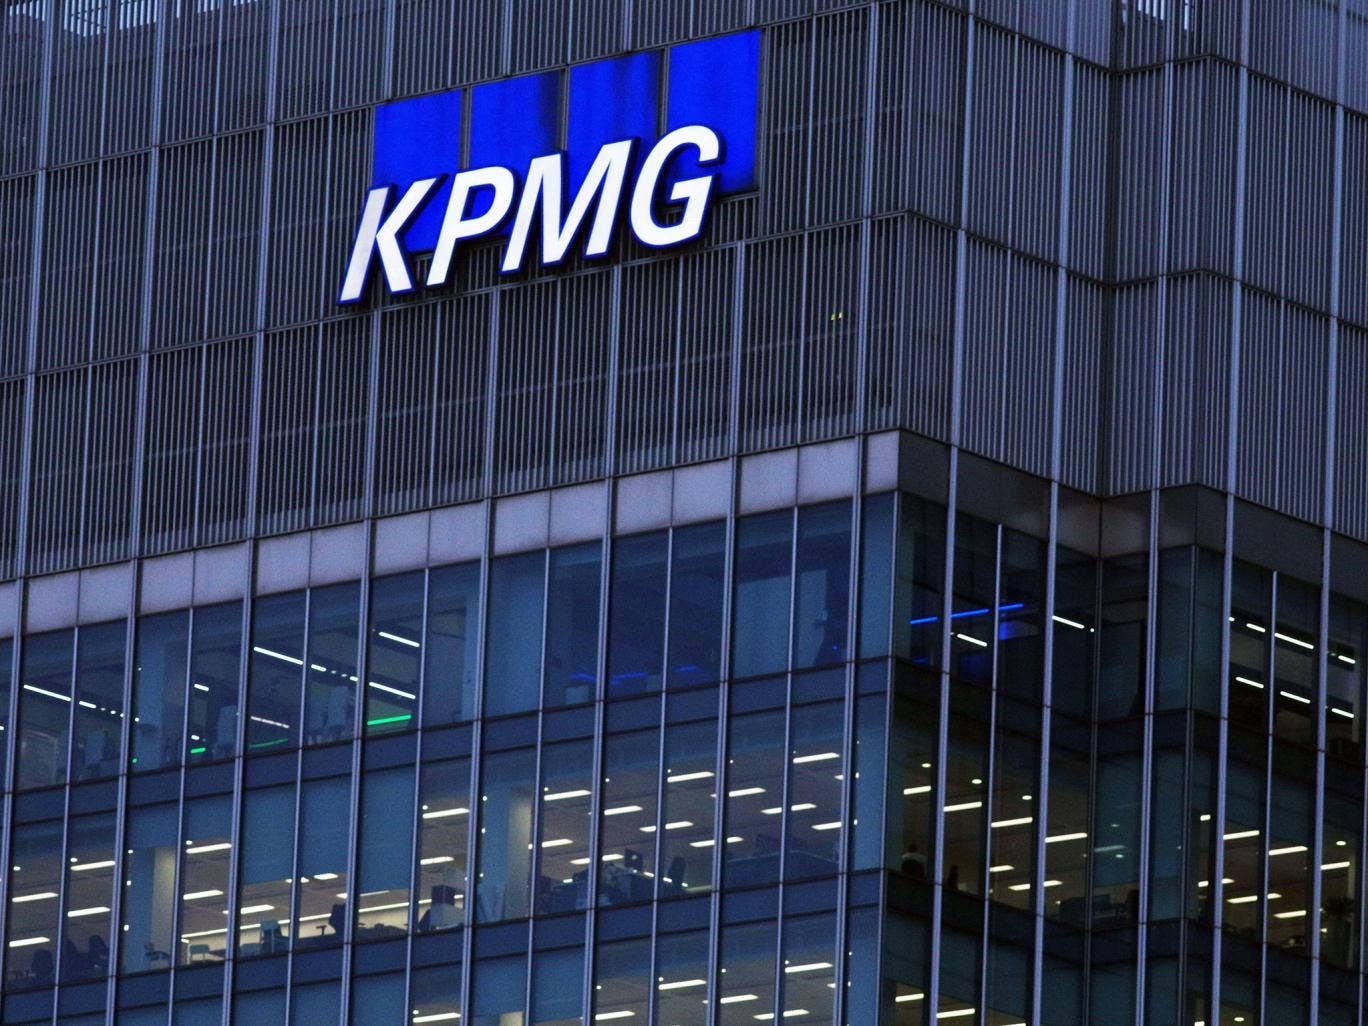 sm kpmg individual Search jobs found 3201 jobs it's the opportunity to do your life's best work(sm) individual contributor manager director executive.